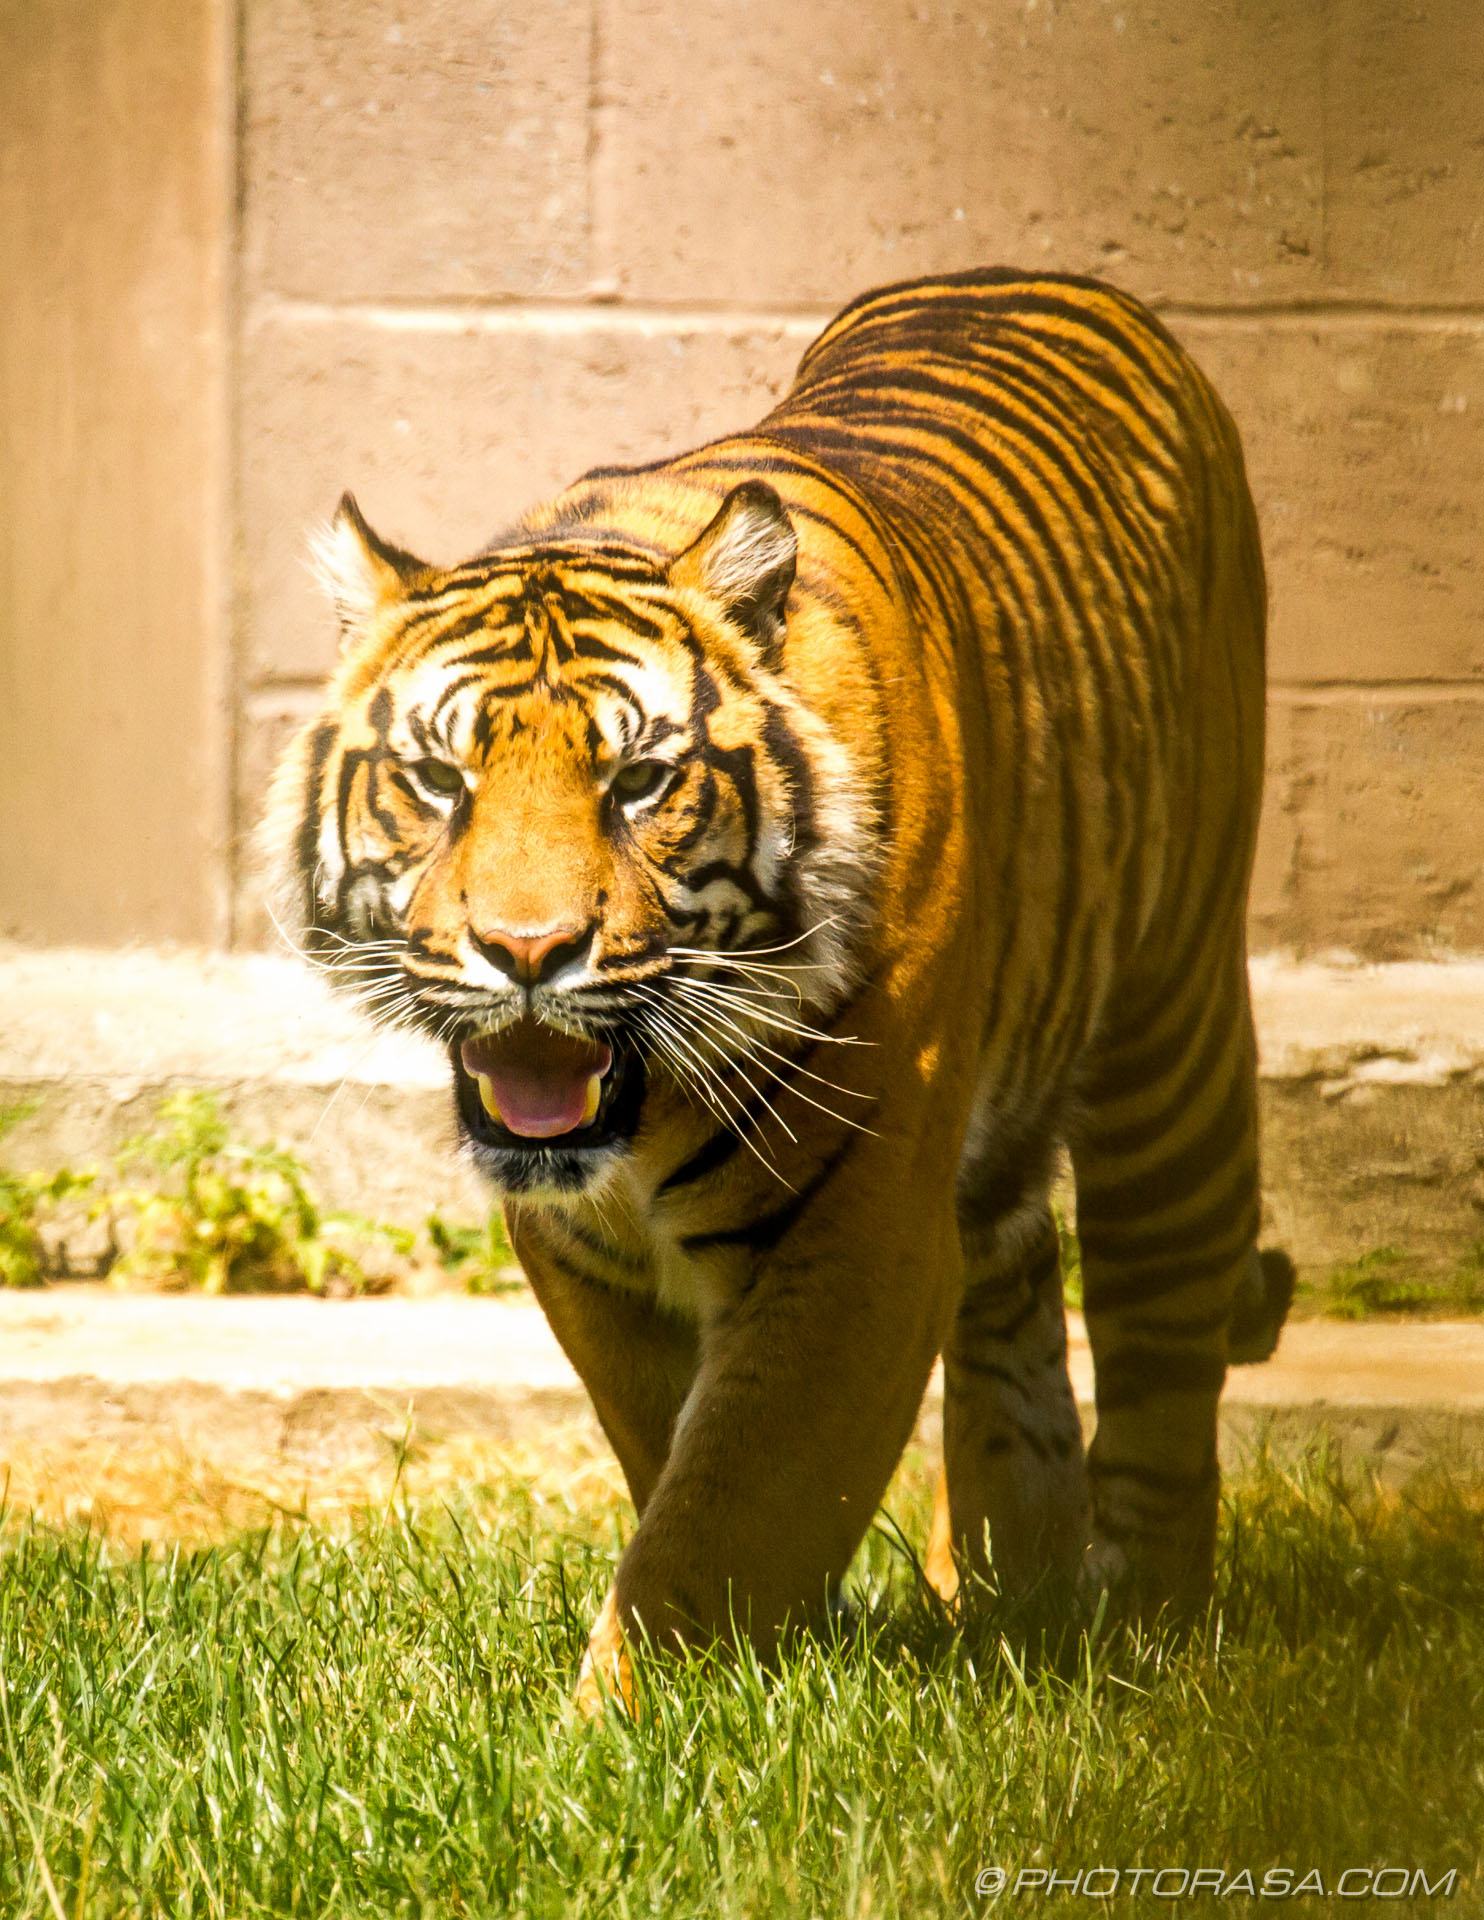 http://photorasa.com/bengal-tiger/tiger-growling/